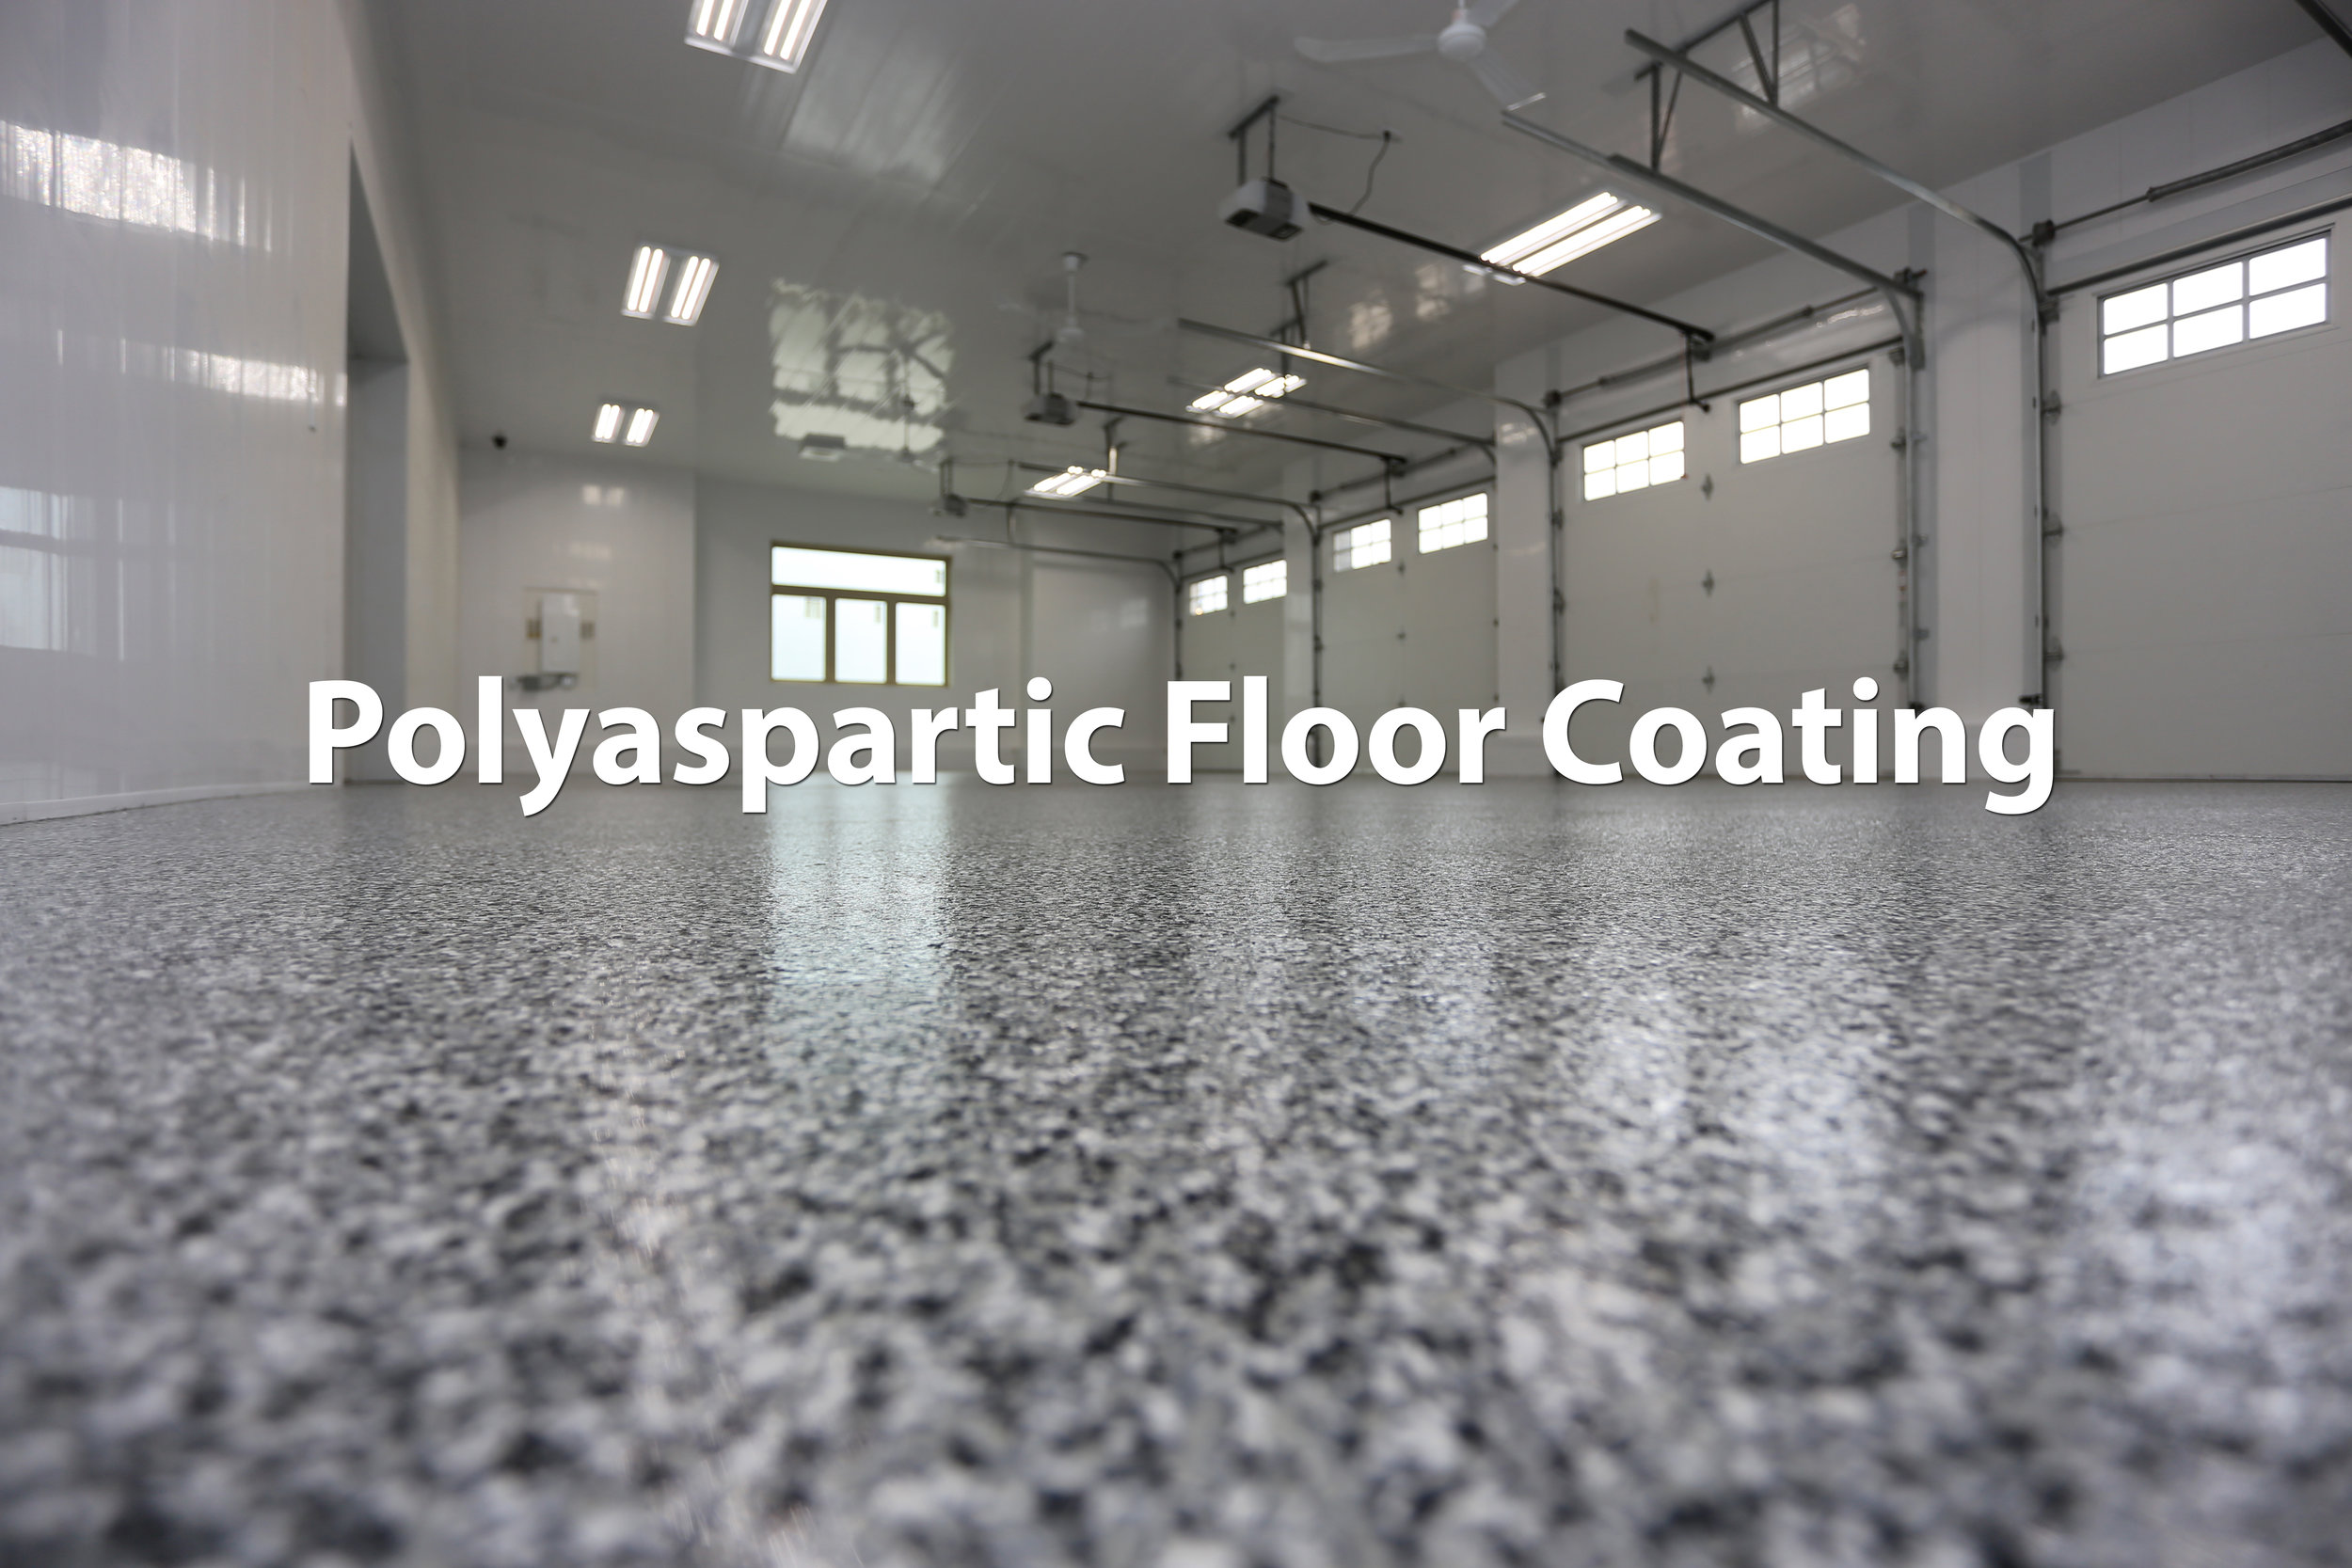 Polyaspartic Garage Floor Coating in Edmonton not Epoxy